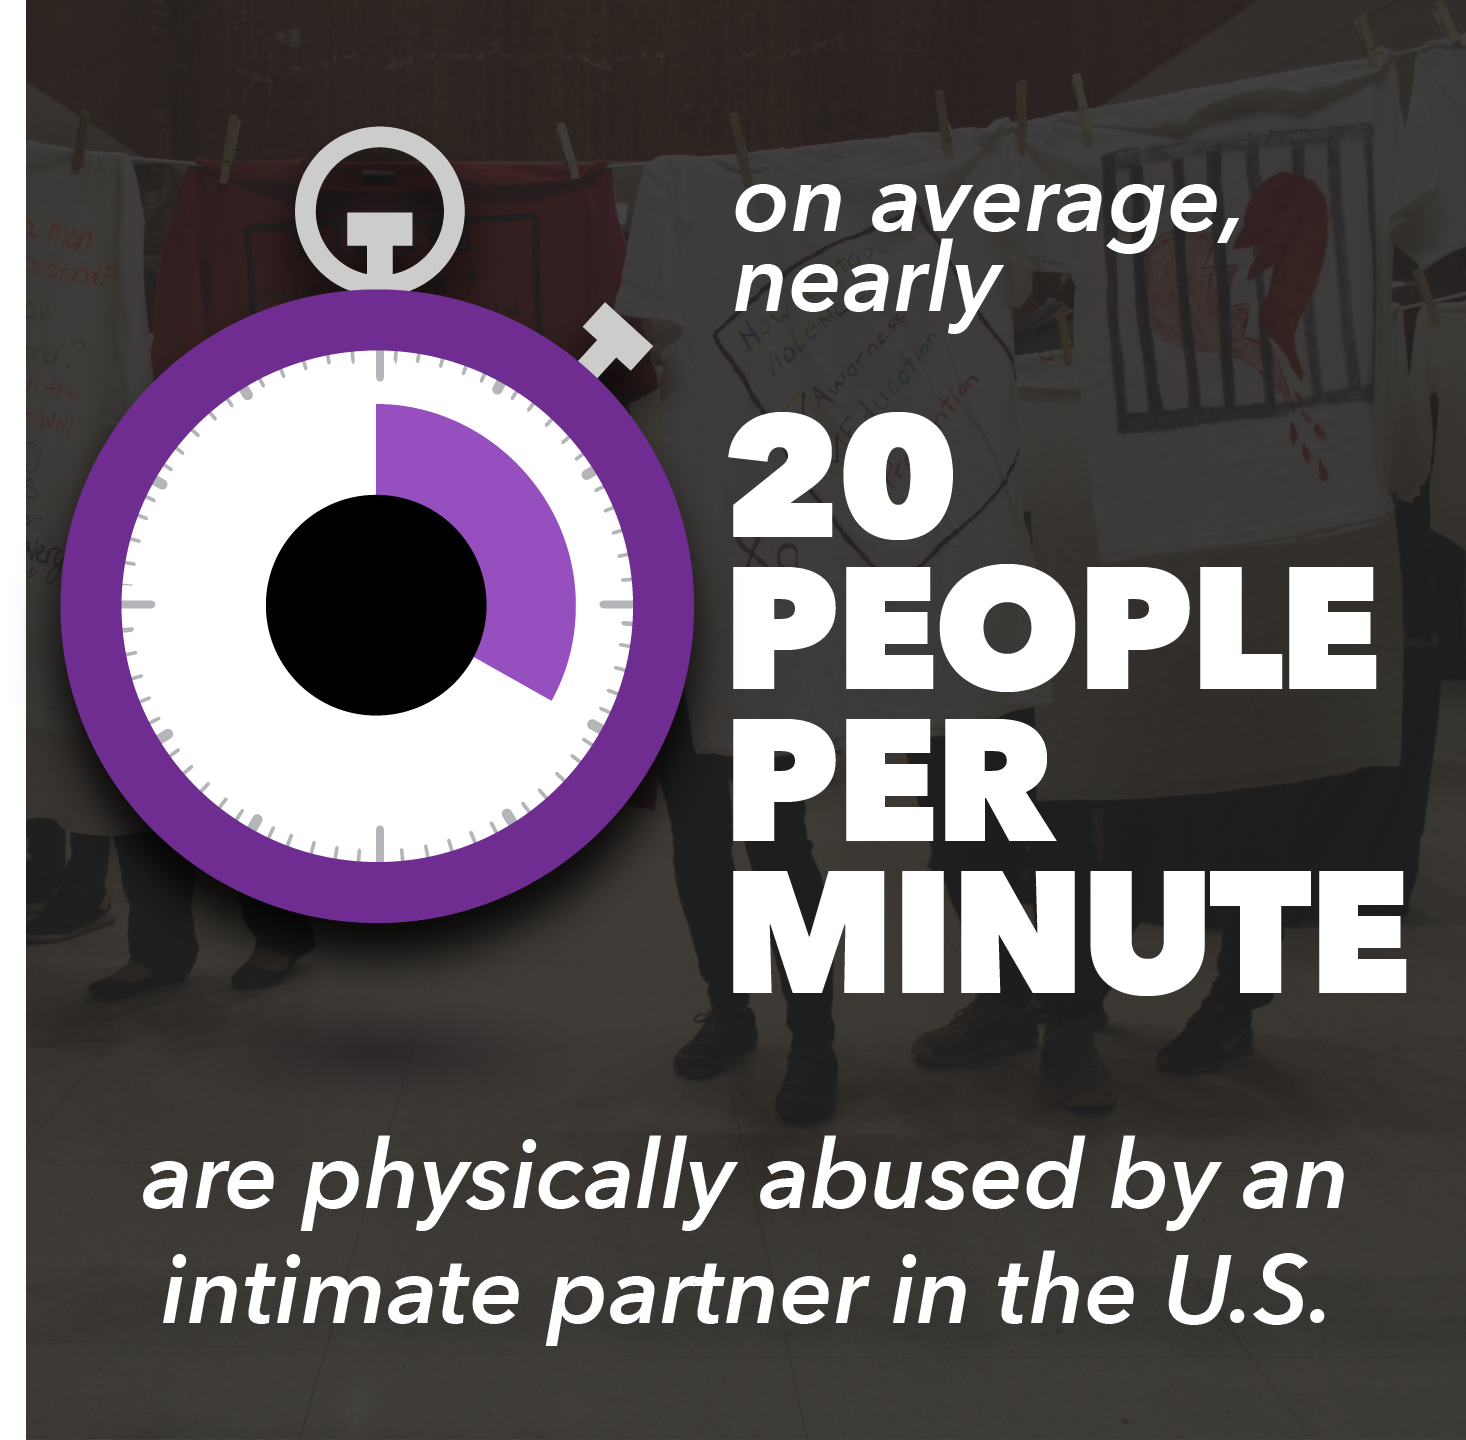 20 people per minute are physically abused by an intimate partner in the US